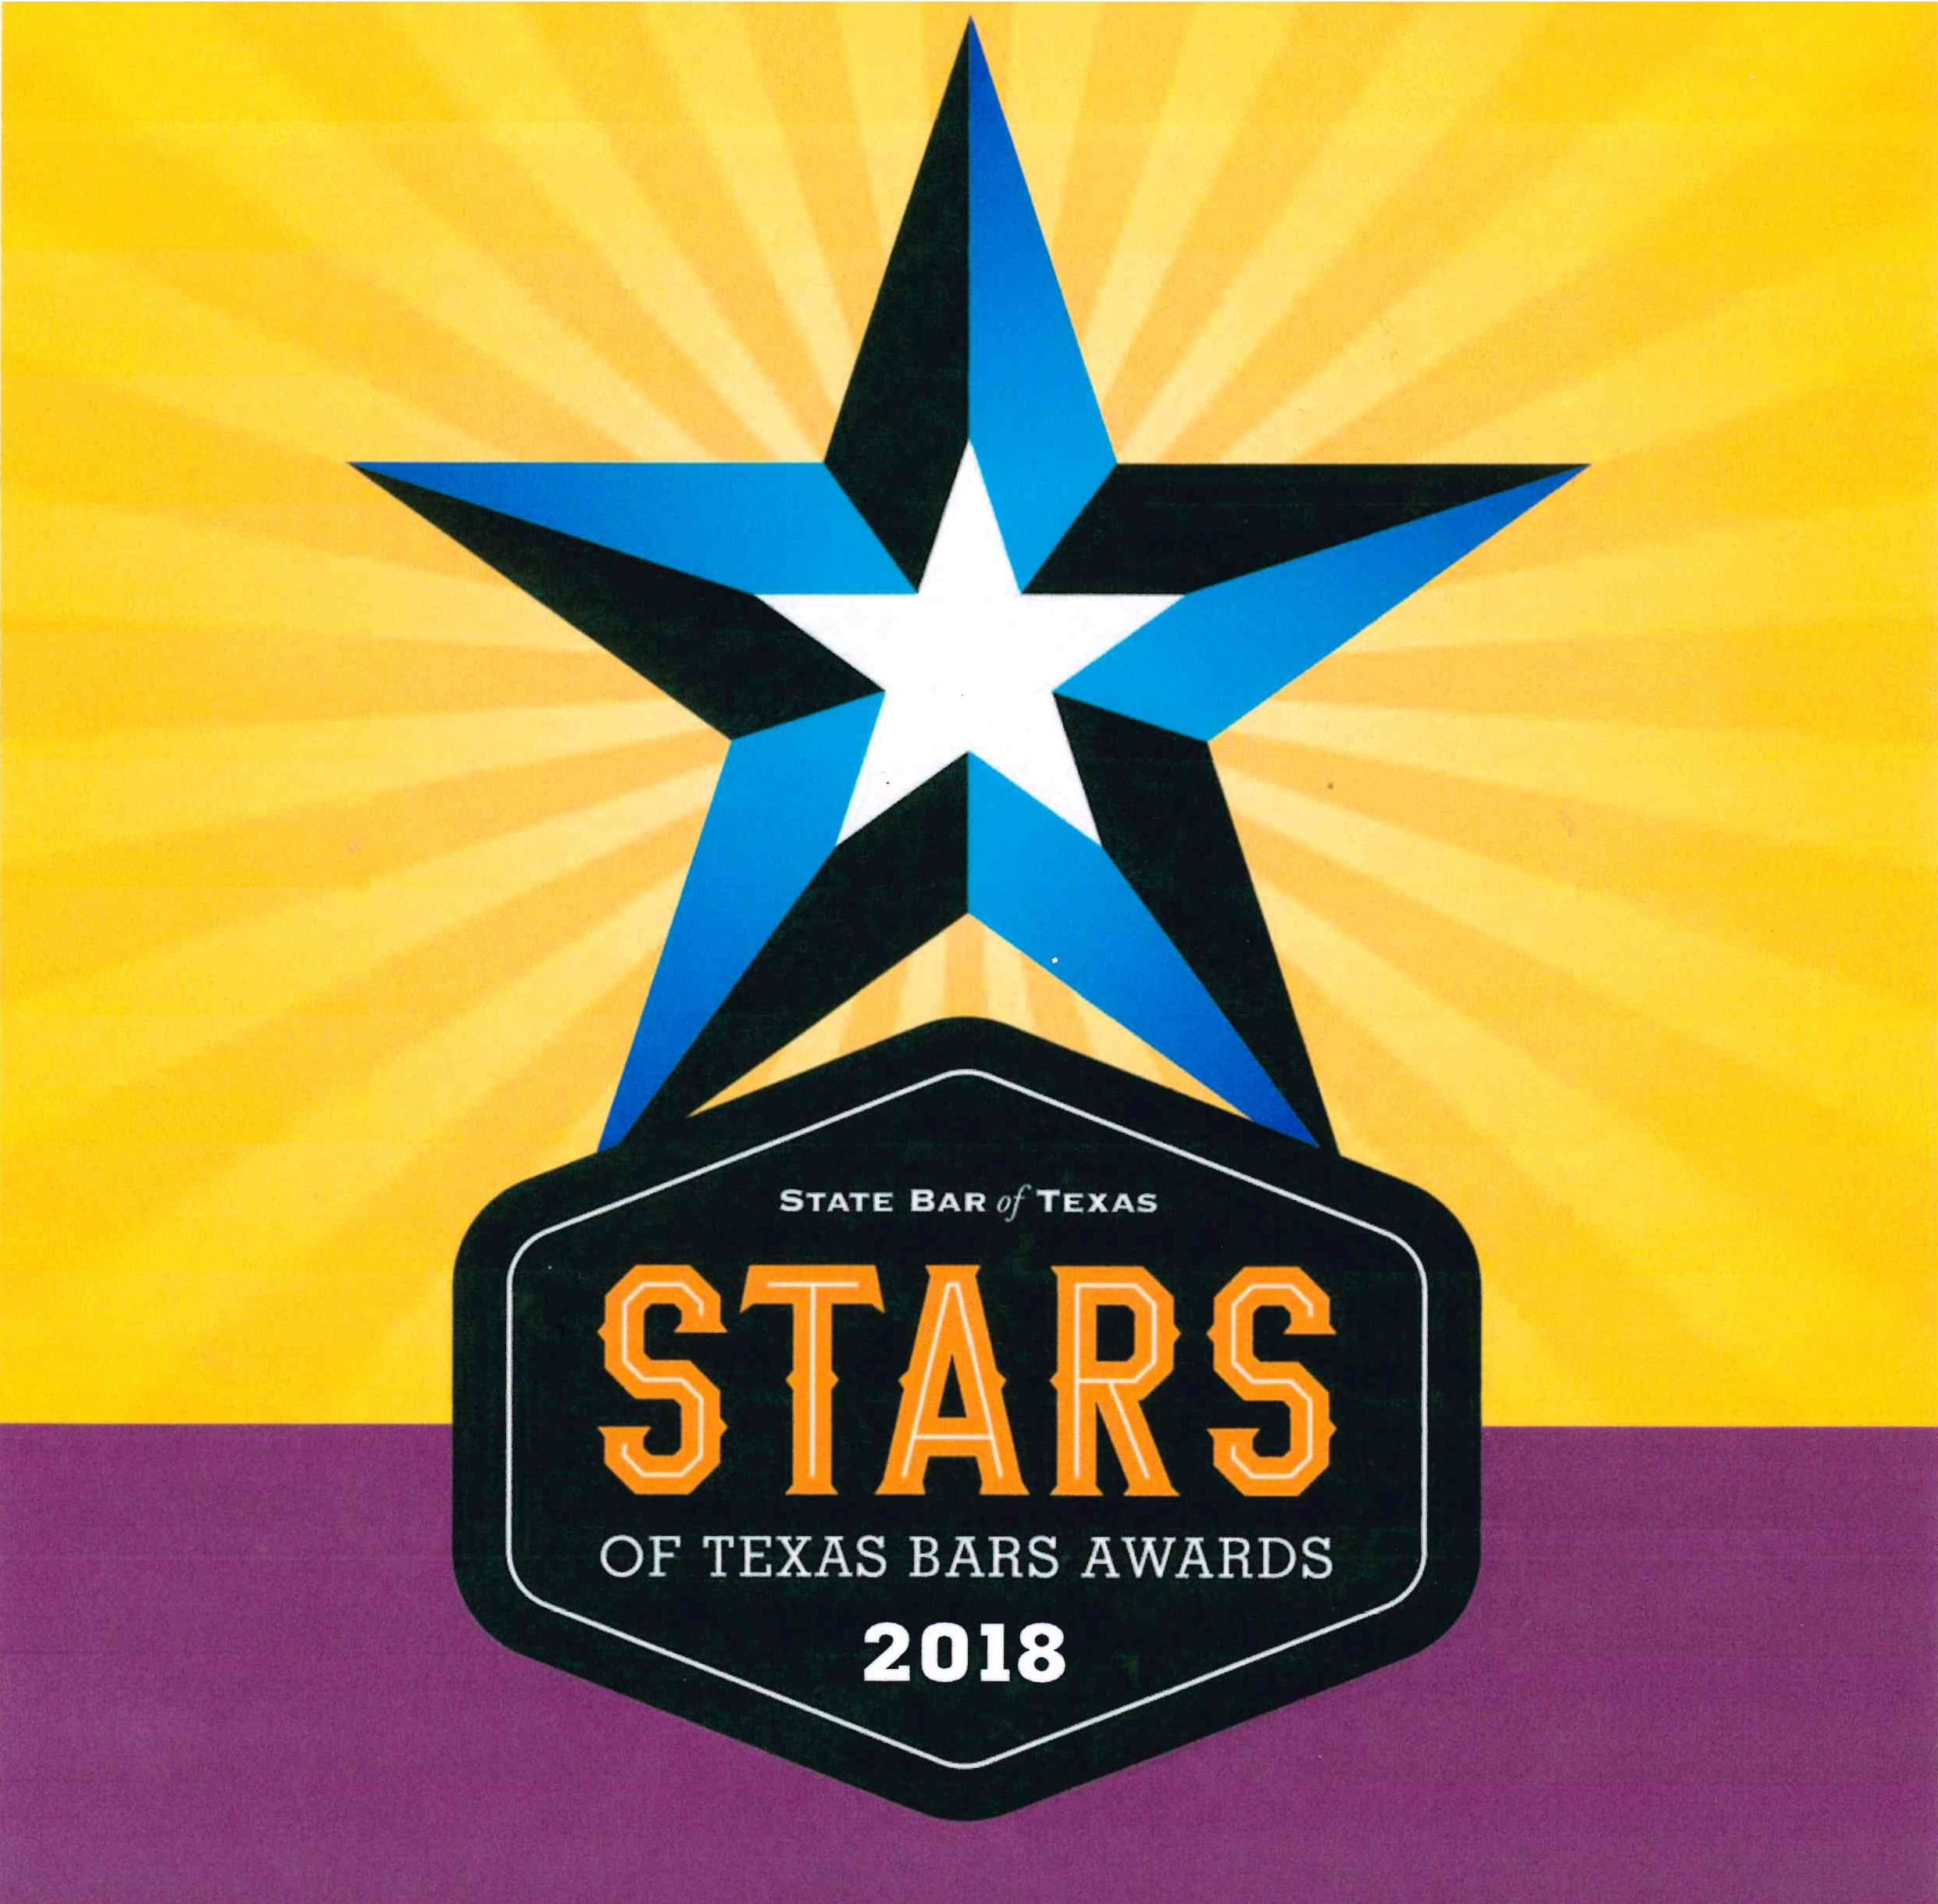 Stars of Texas Bar Awards